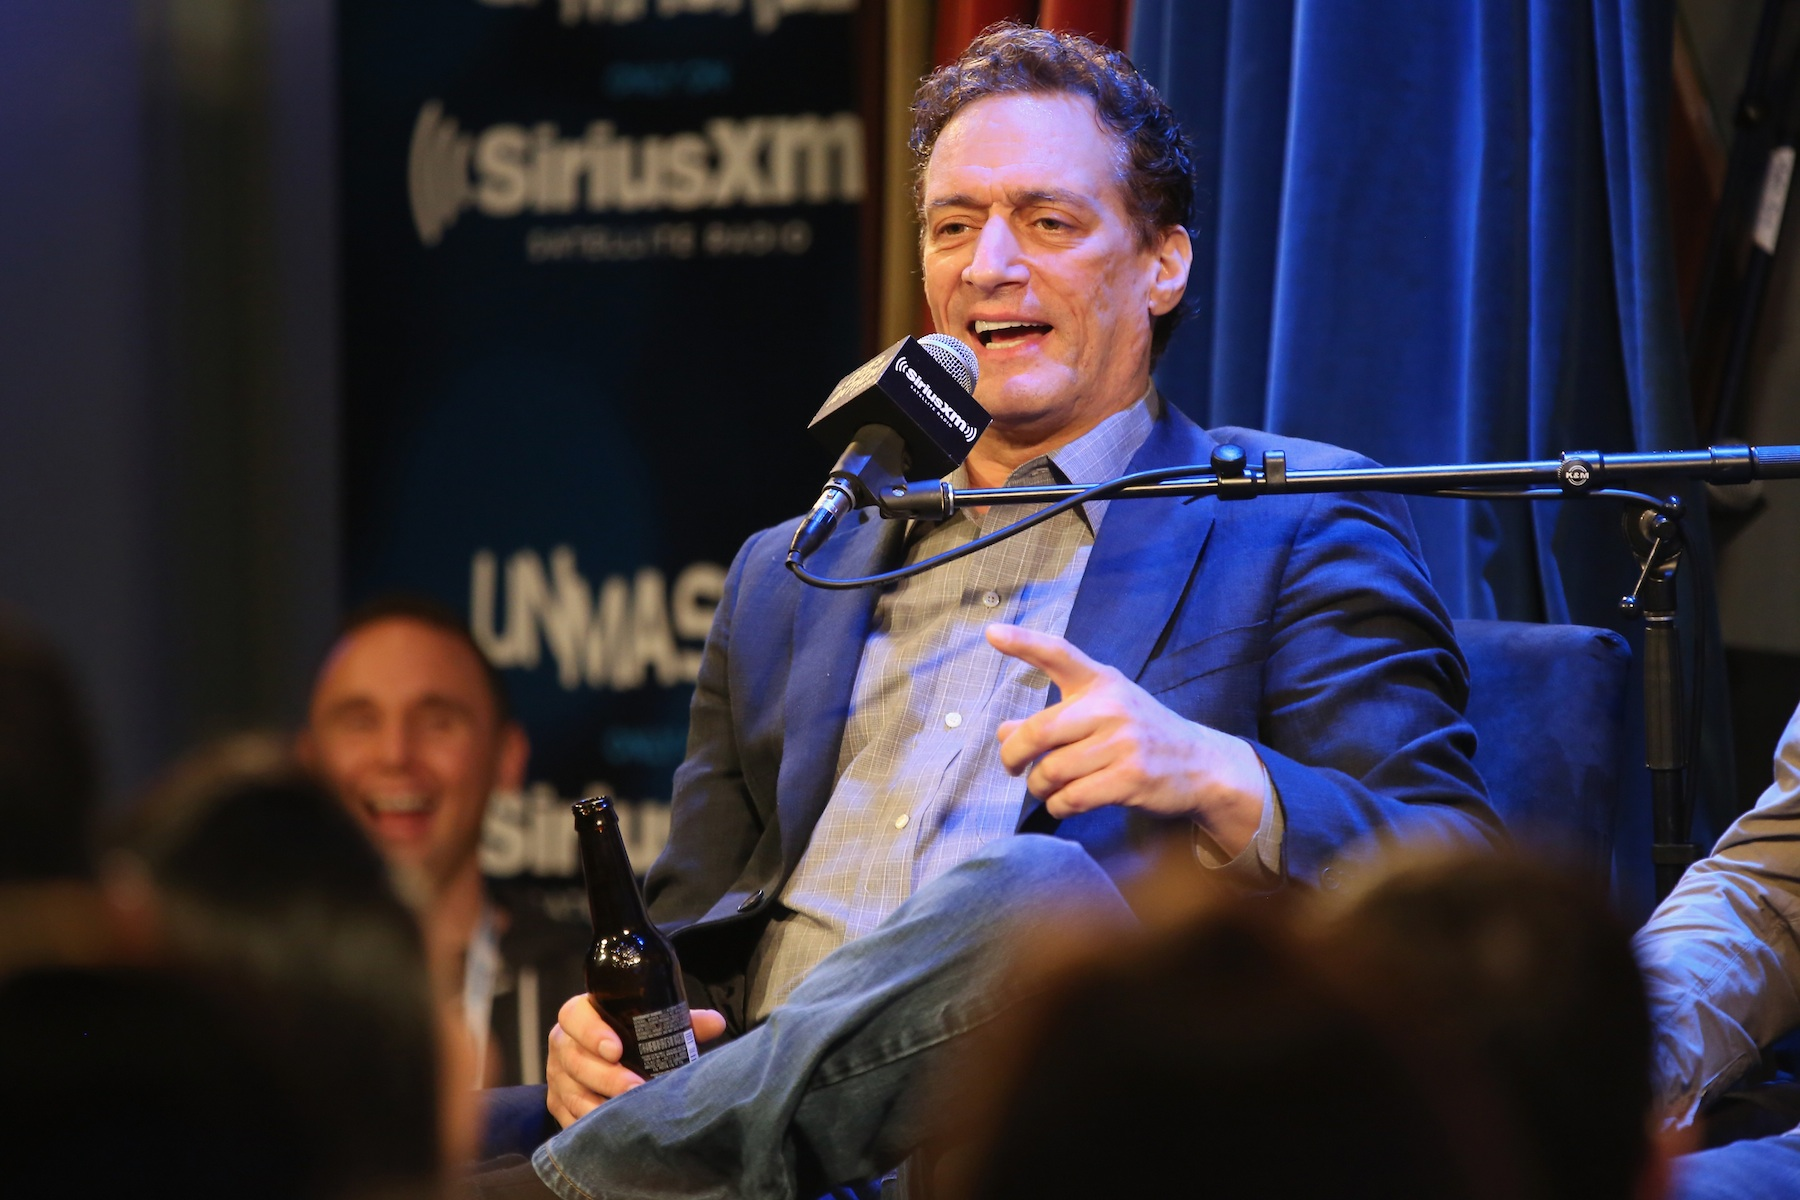 Opie Anthony Host Anthony Cumia Fired After Racist Twitter Tirade